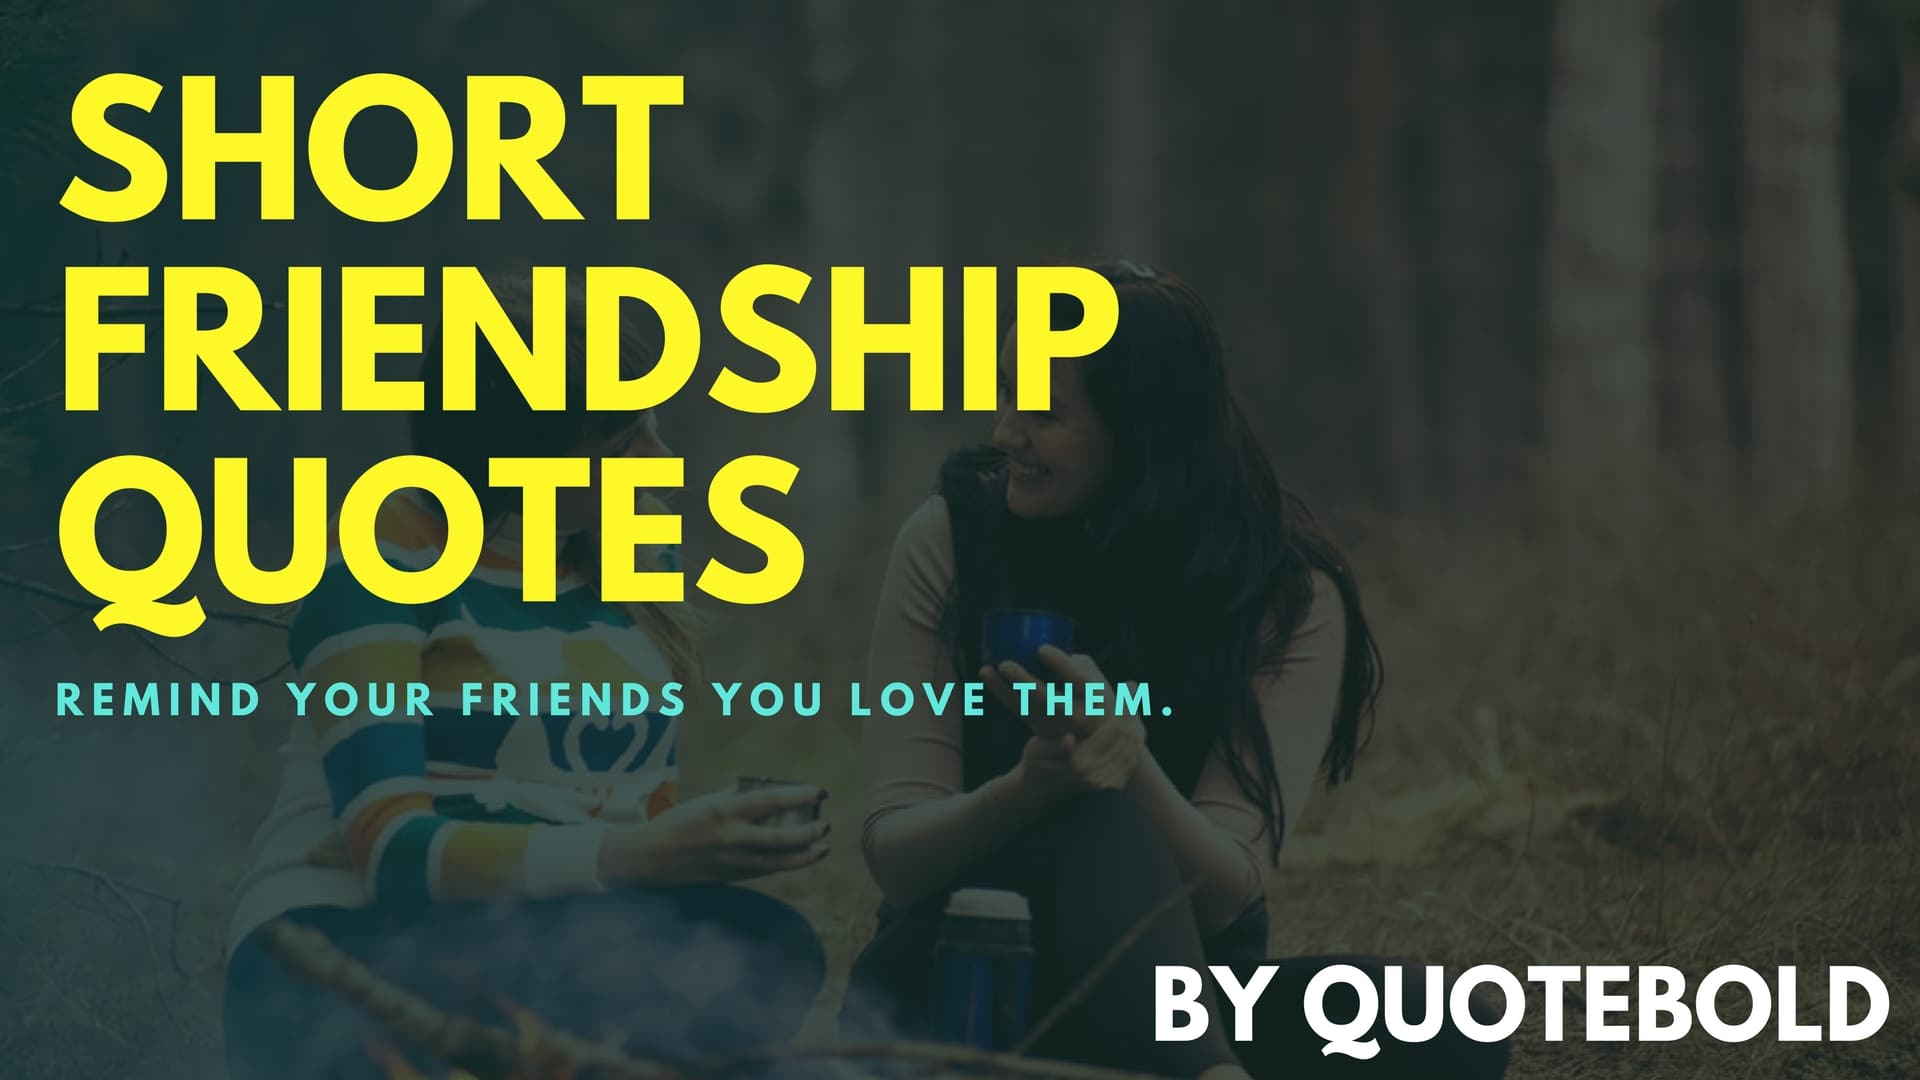 Quotes Of Friendship | 67 Short Friendship Quotes Images Free Ebook Quote Bold